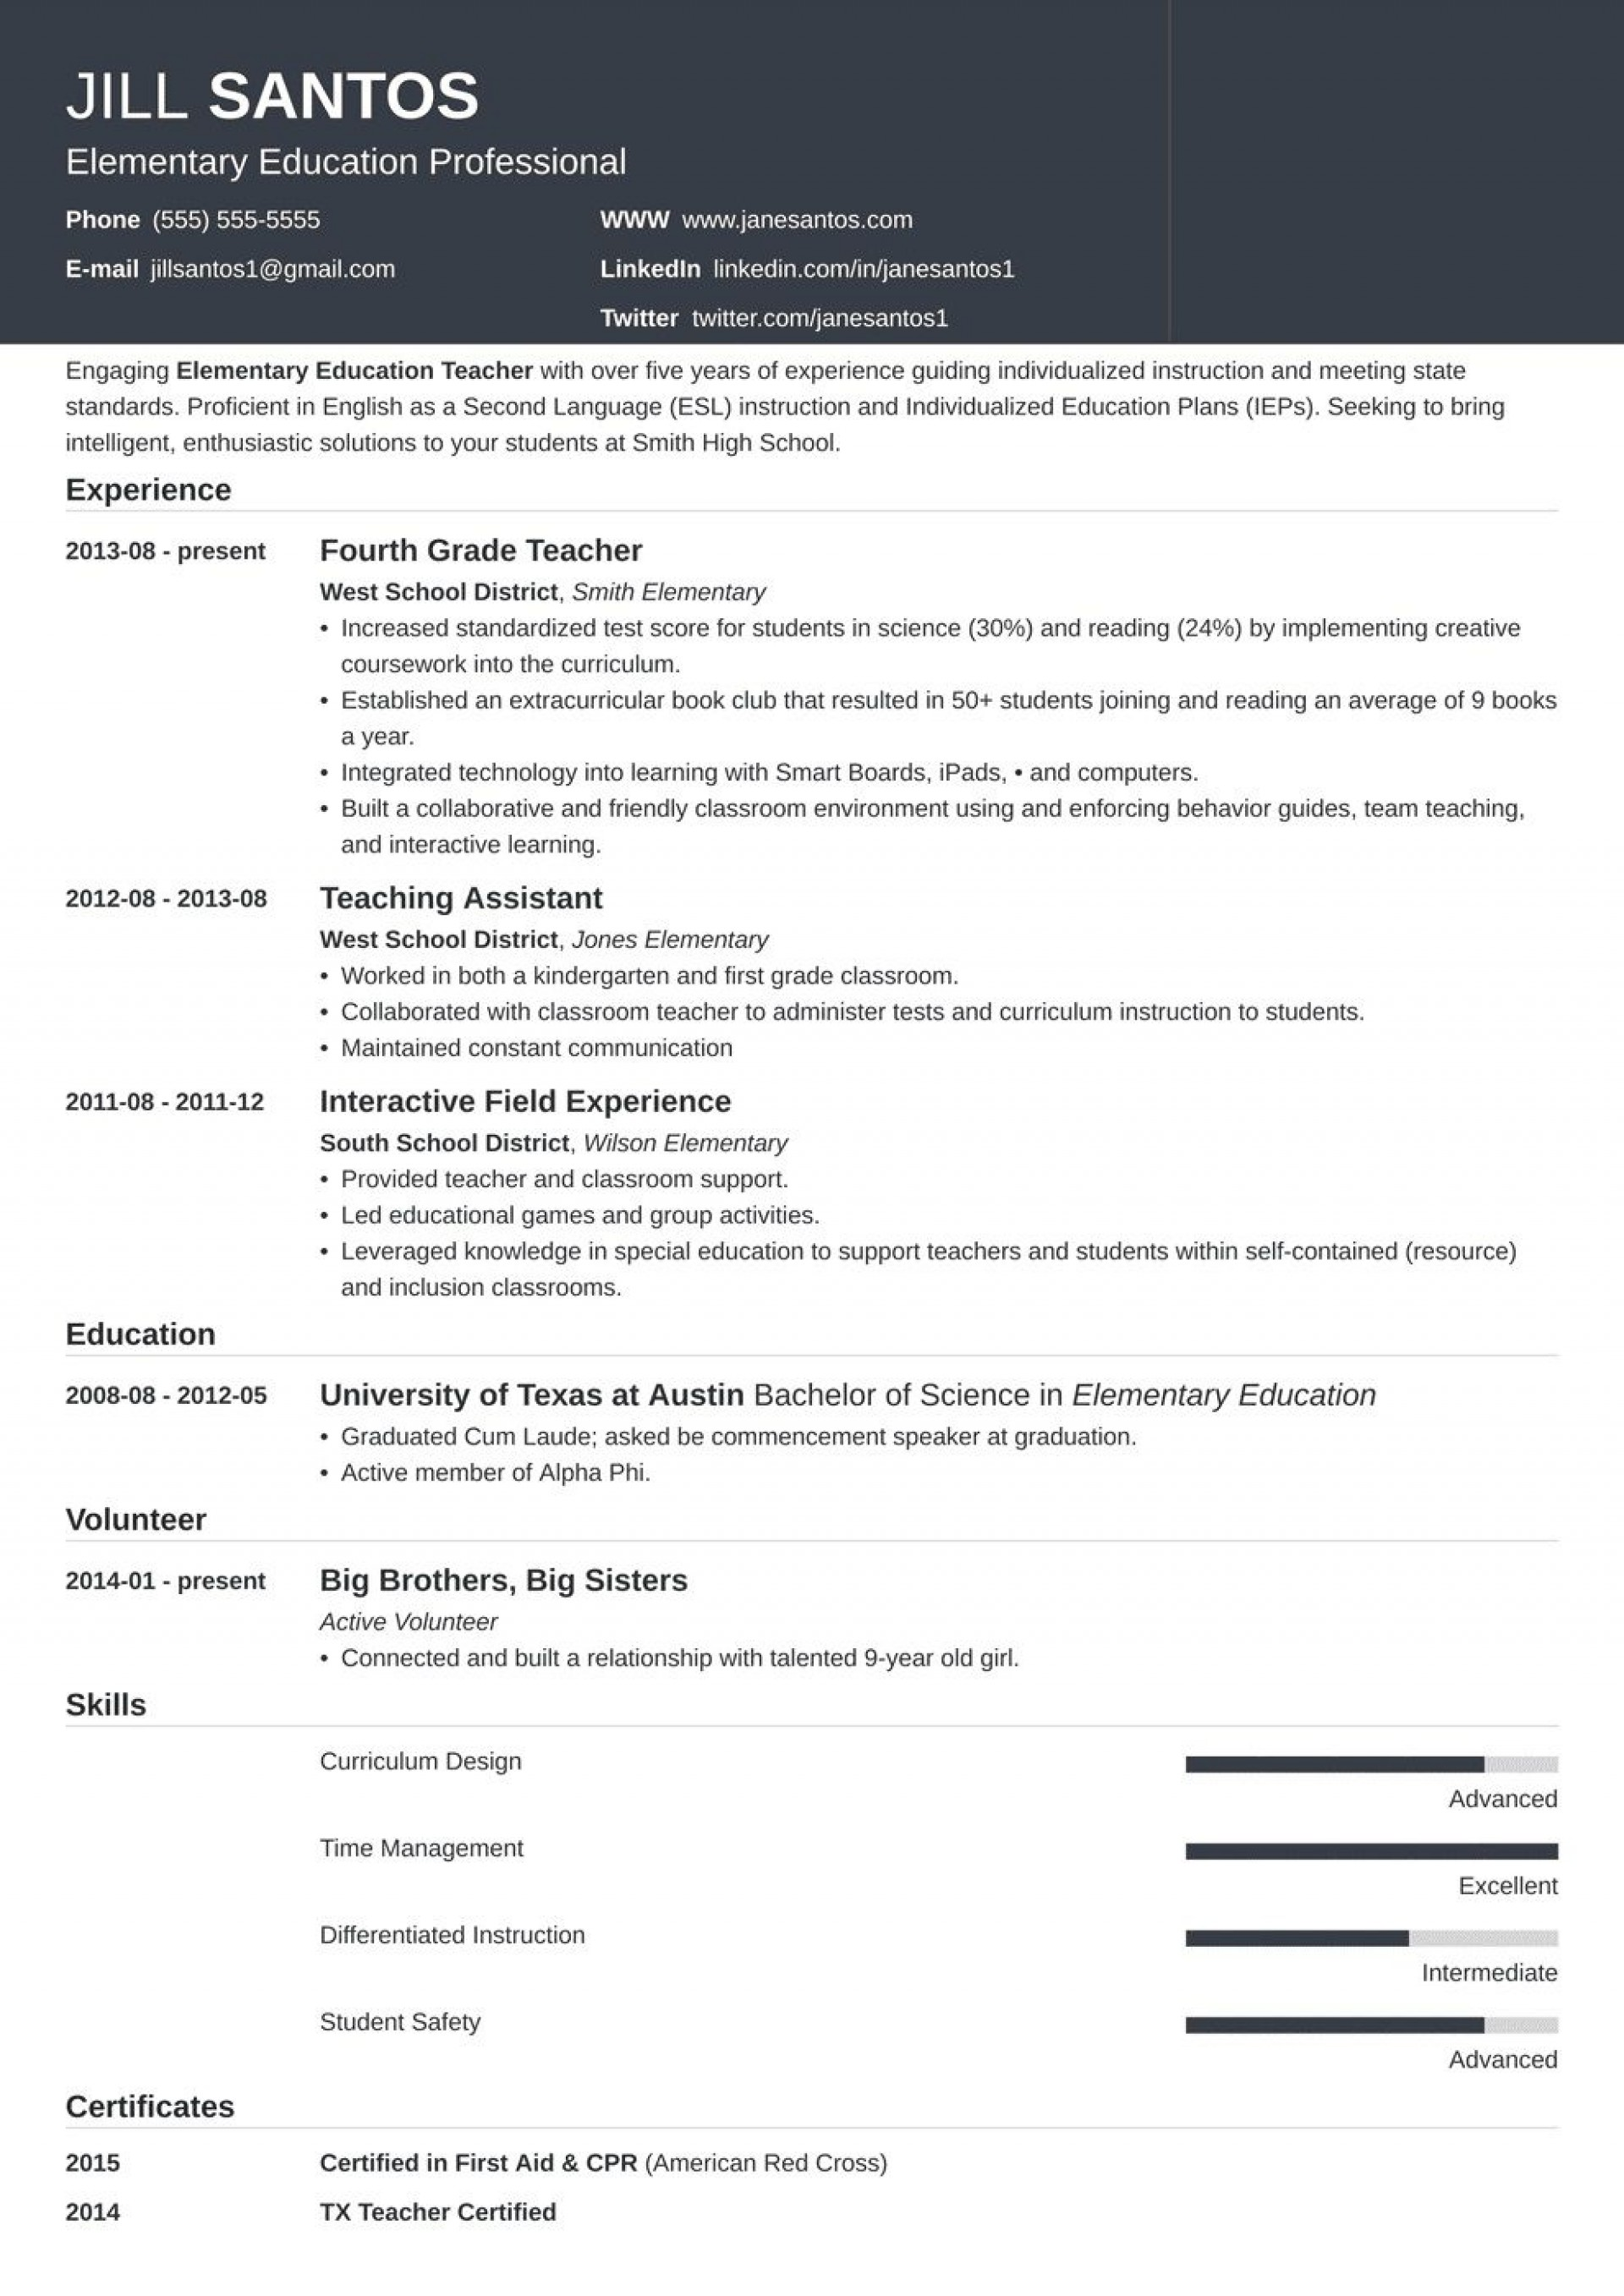 004 Archaicawful Resume Template For Teacher Highest Clarity  Free Download Australia Microsoft Word 20071920